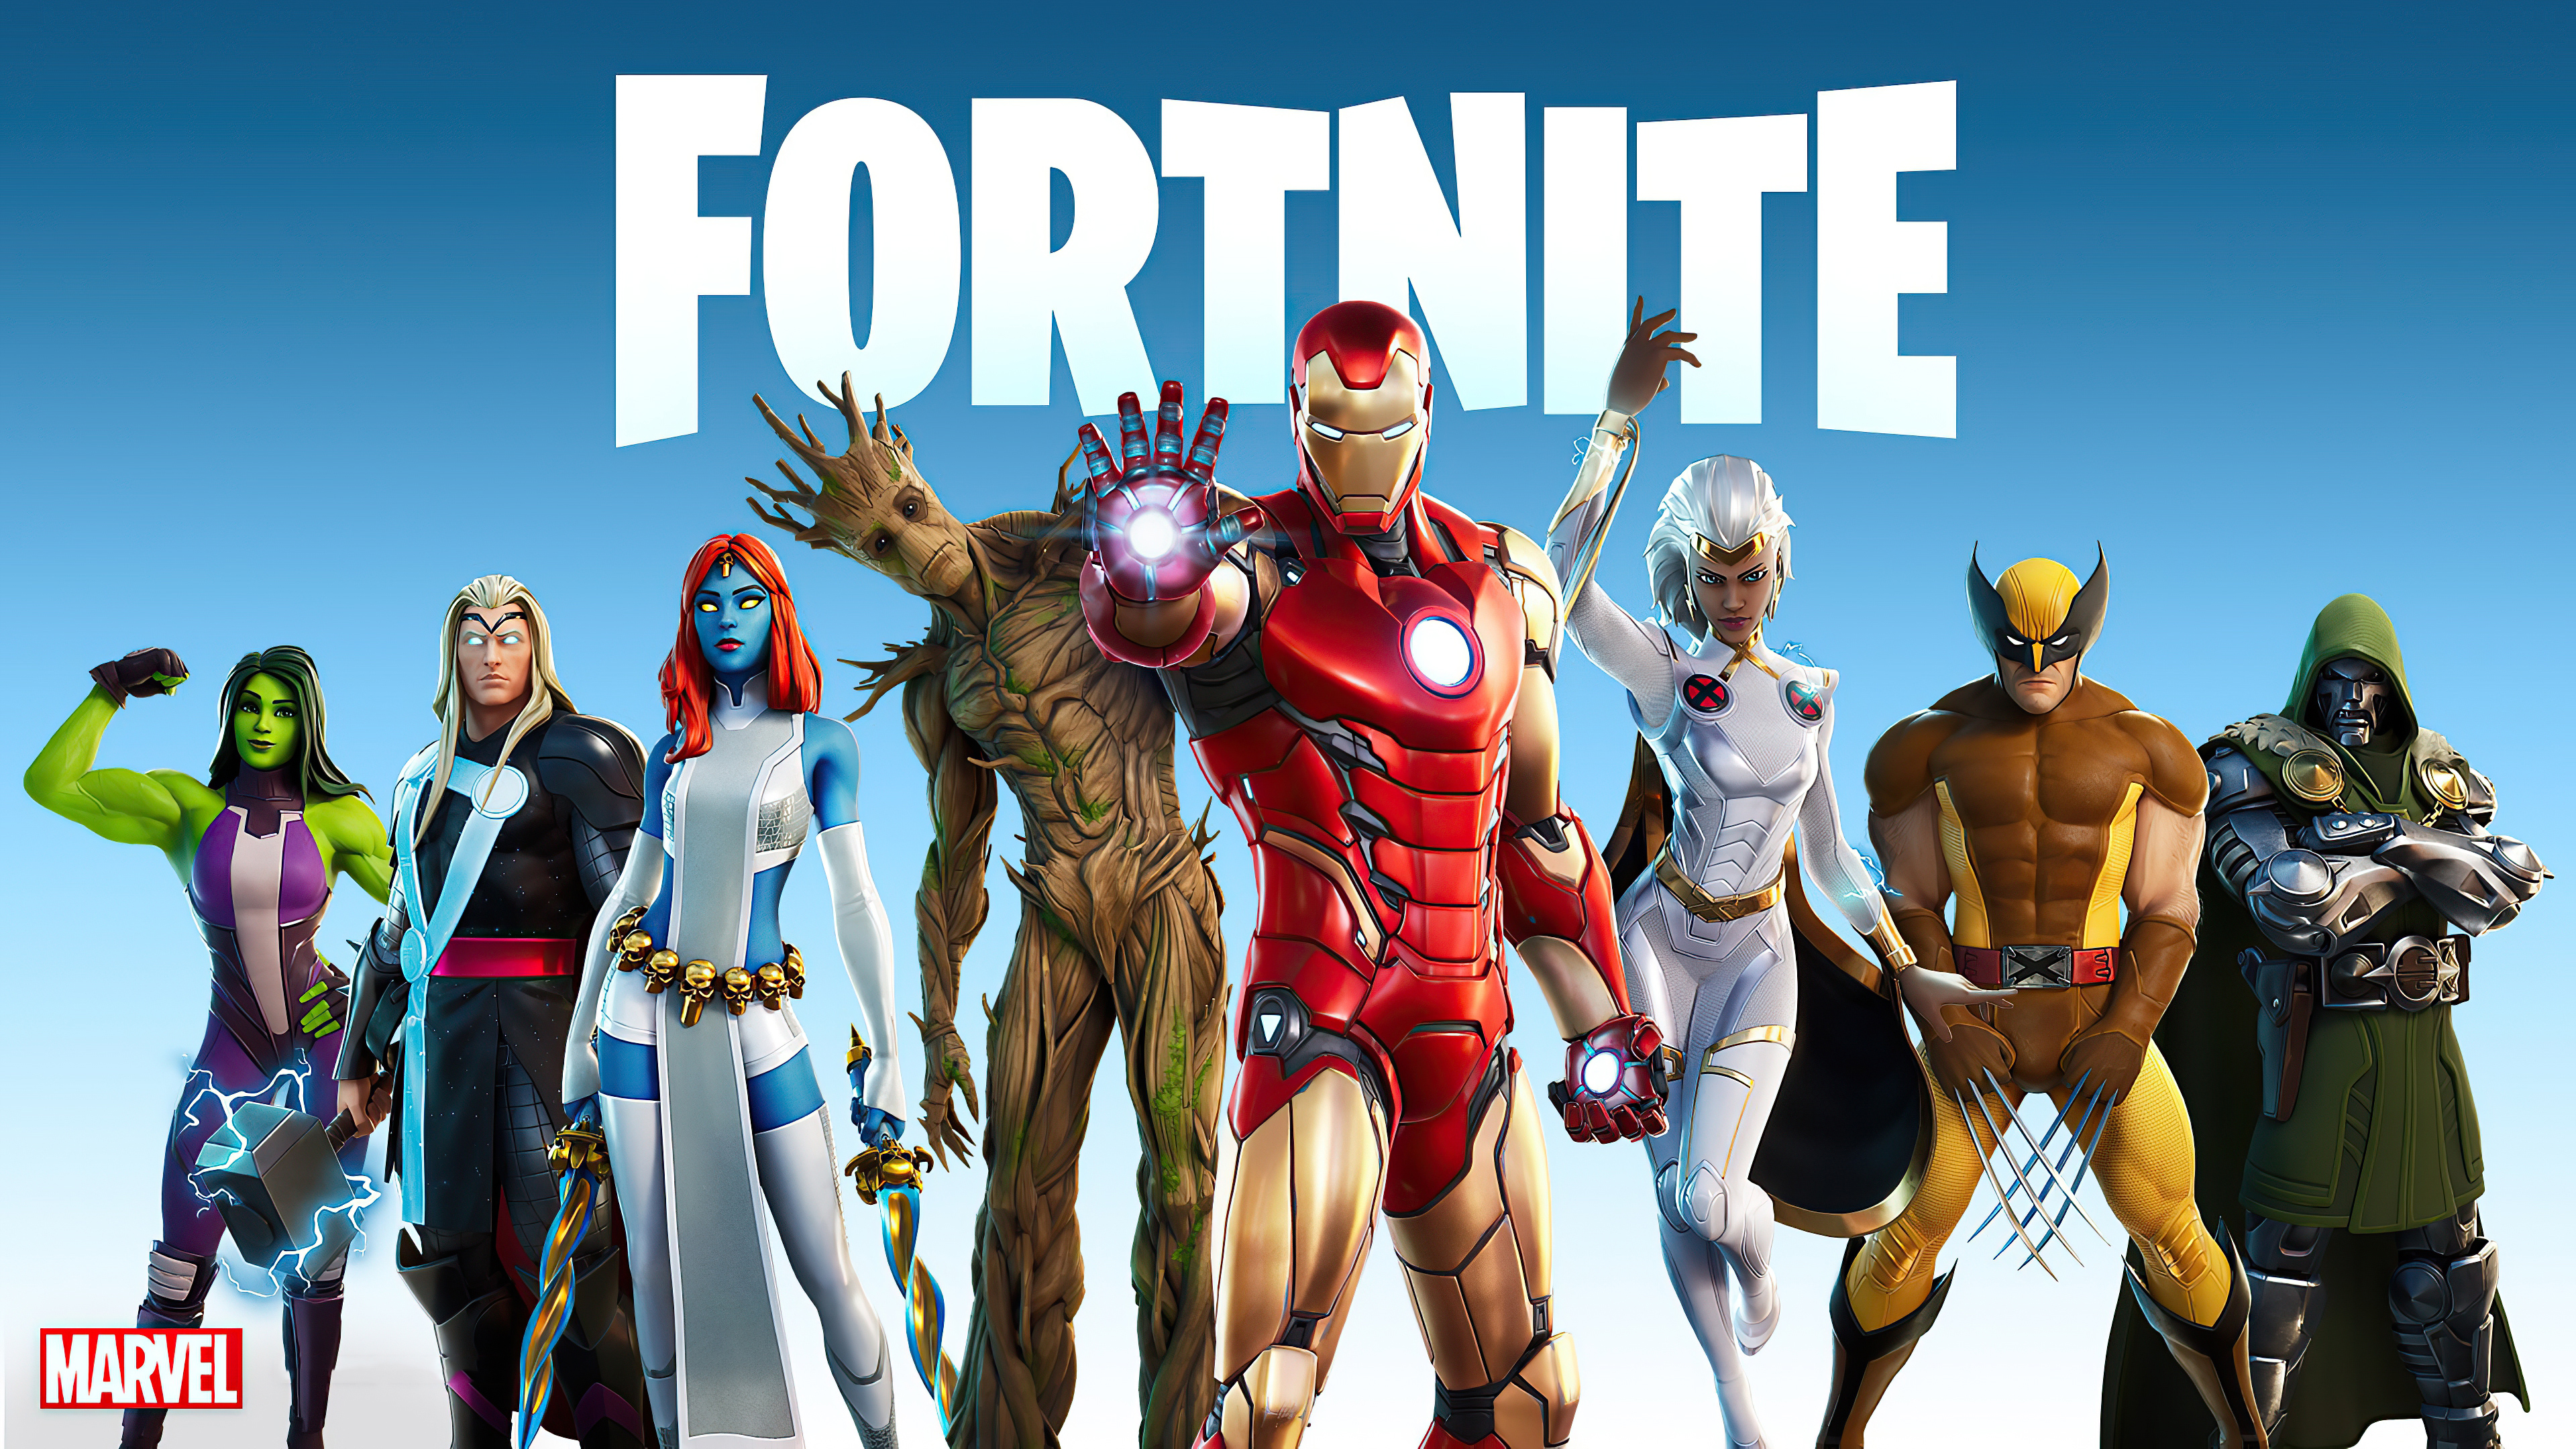 Fortnite Season 4 Nexus War 2020 Hd Games 4k Wallpapers Images Backgrounds Photos And Pictures